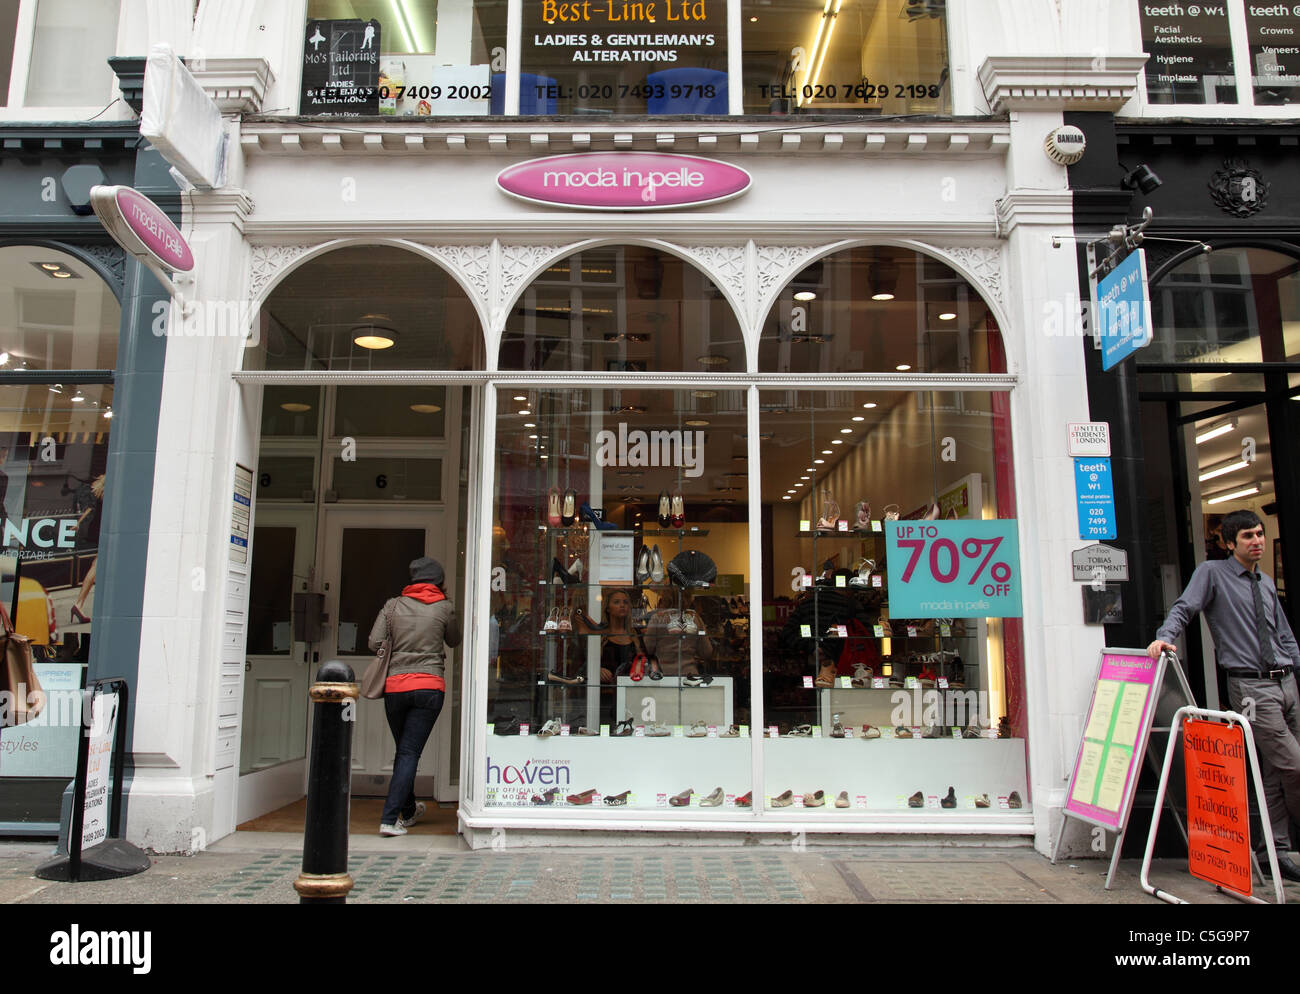 Una Moda in Pelle store su South Molton Street, London, England, Regno Unito Immagini Stock